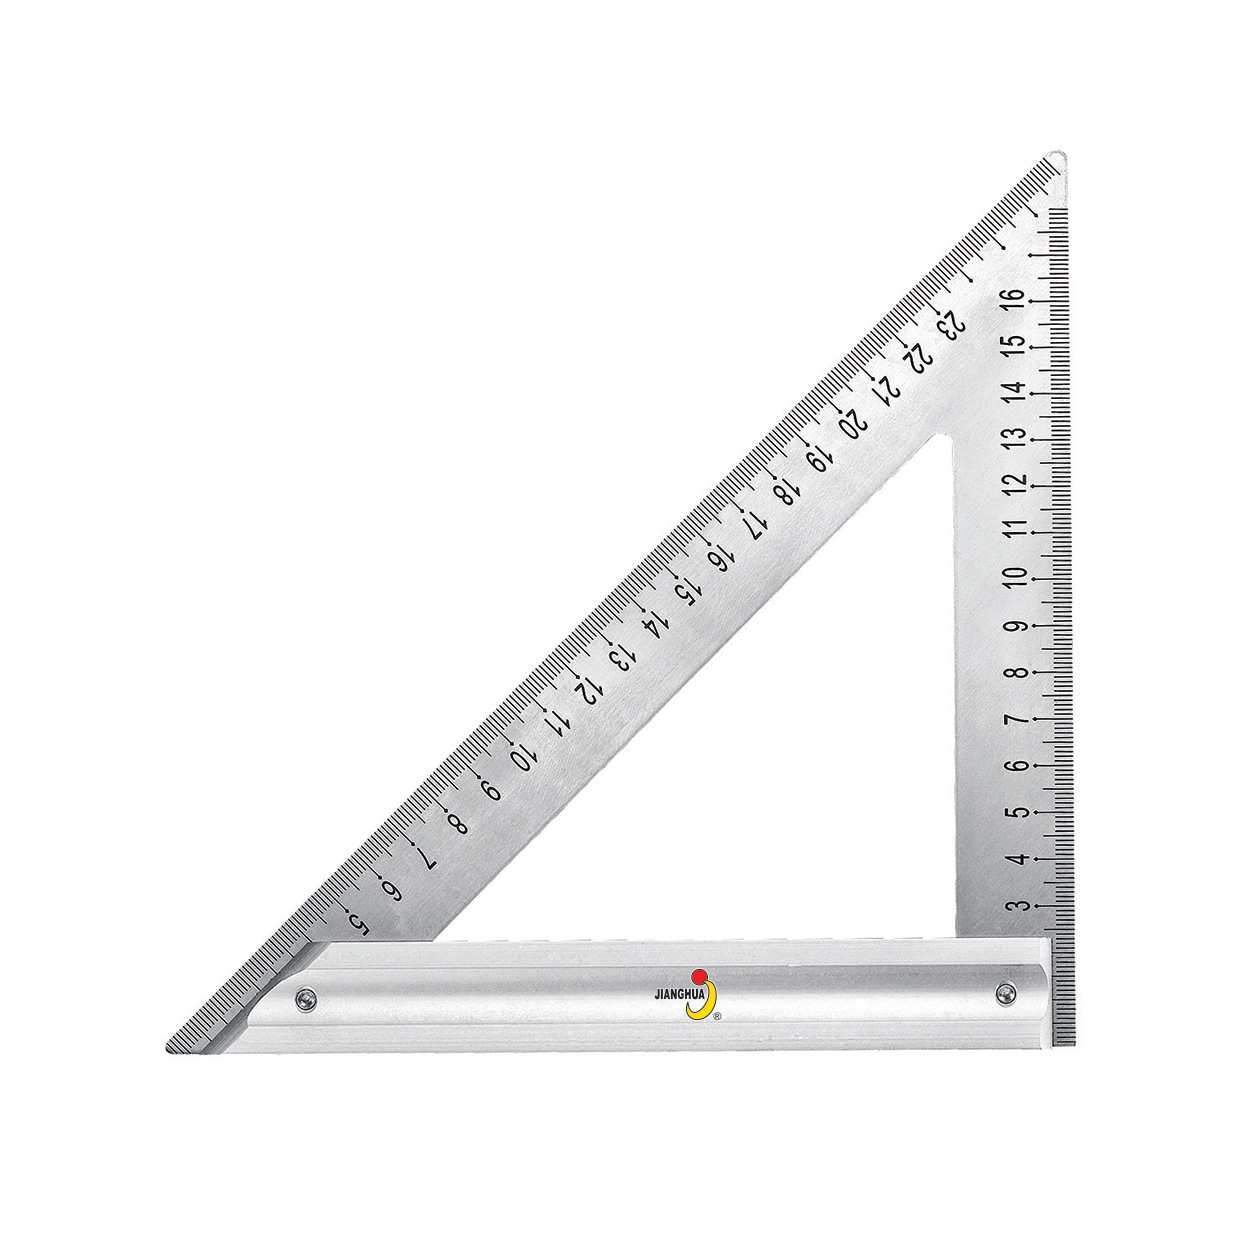 Cegar Hua Tool Aluminum Seat Stainless Steel Triangle Ruler L-square 120 Mm 180 Mm 015012 015018